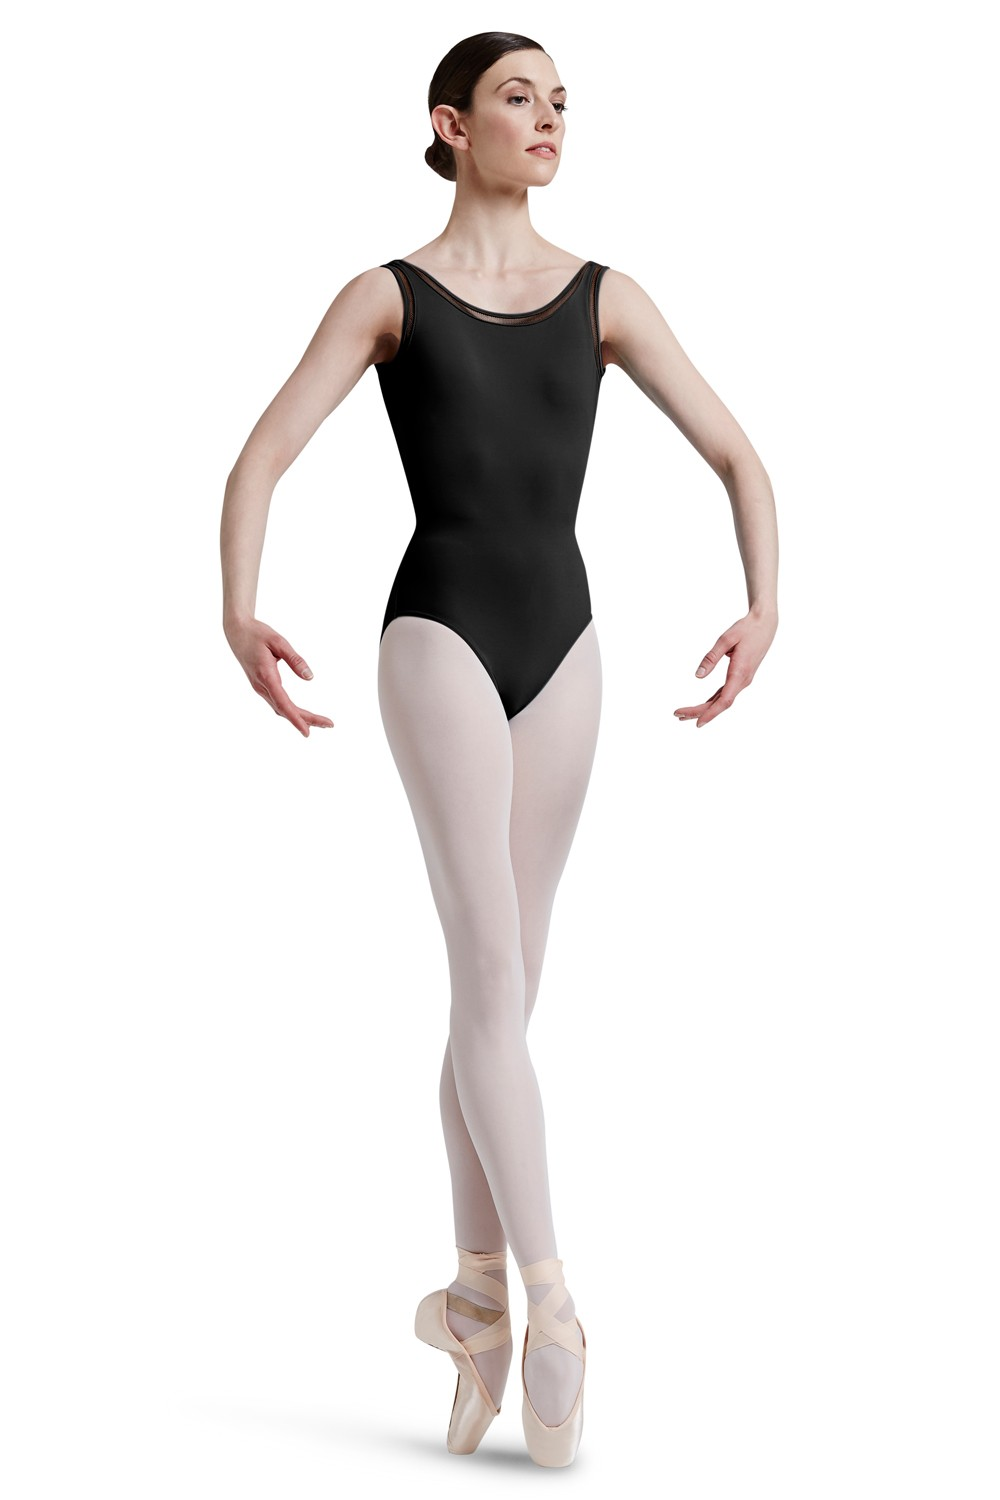 Justaucorps Sans Manches Dos En V Plongeant Women's Dance Leotards